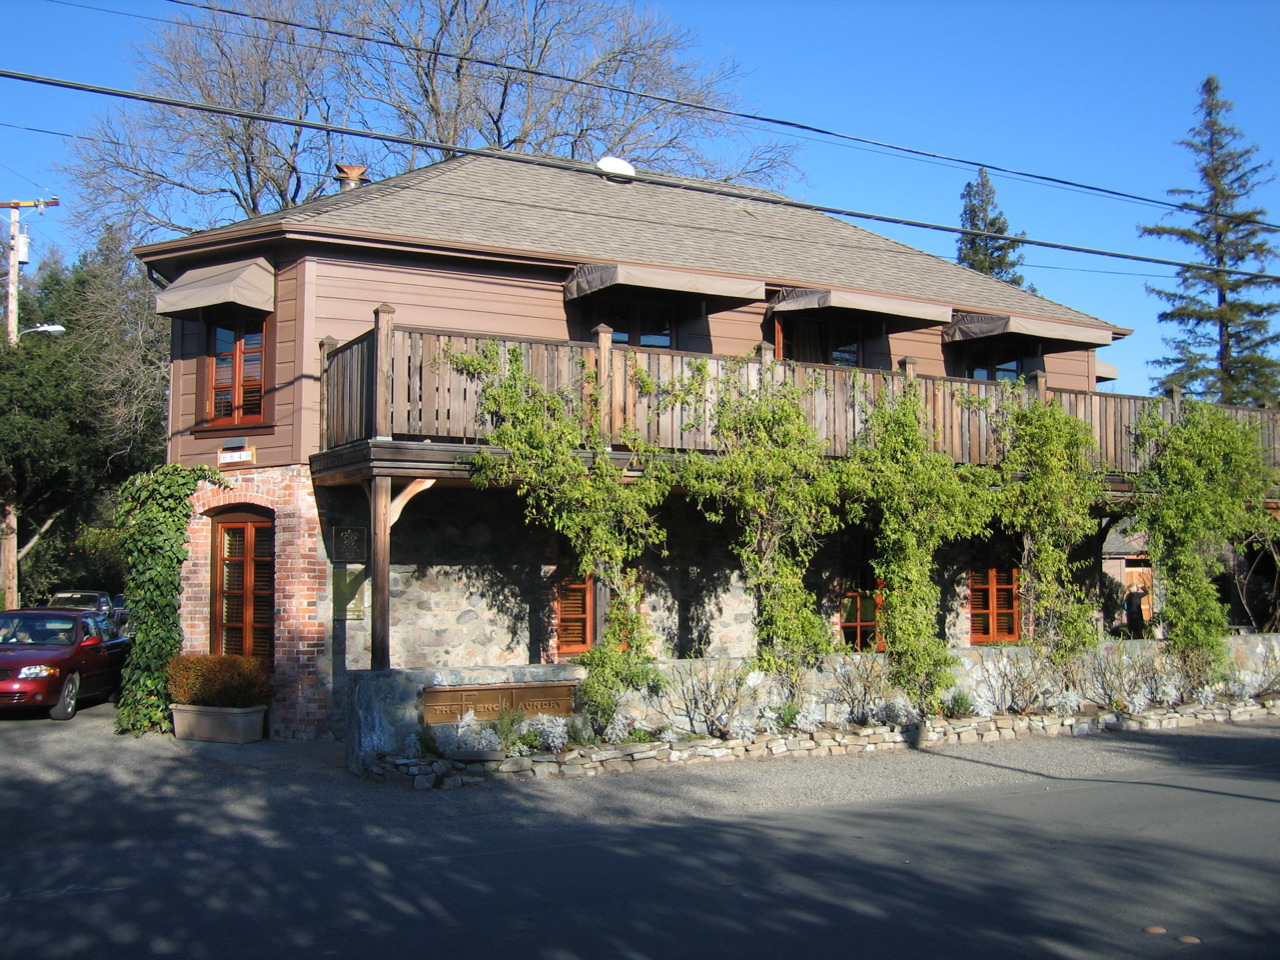 30 Great Small Towns For Wine Lovers Top Value Reviews